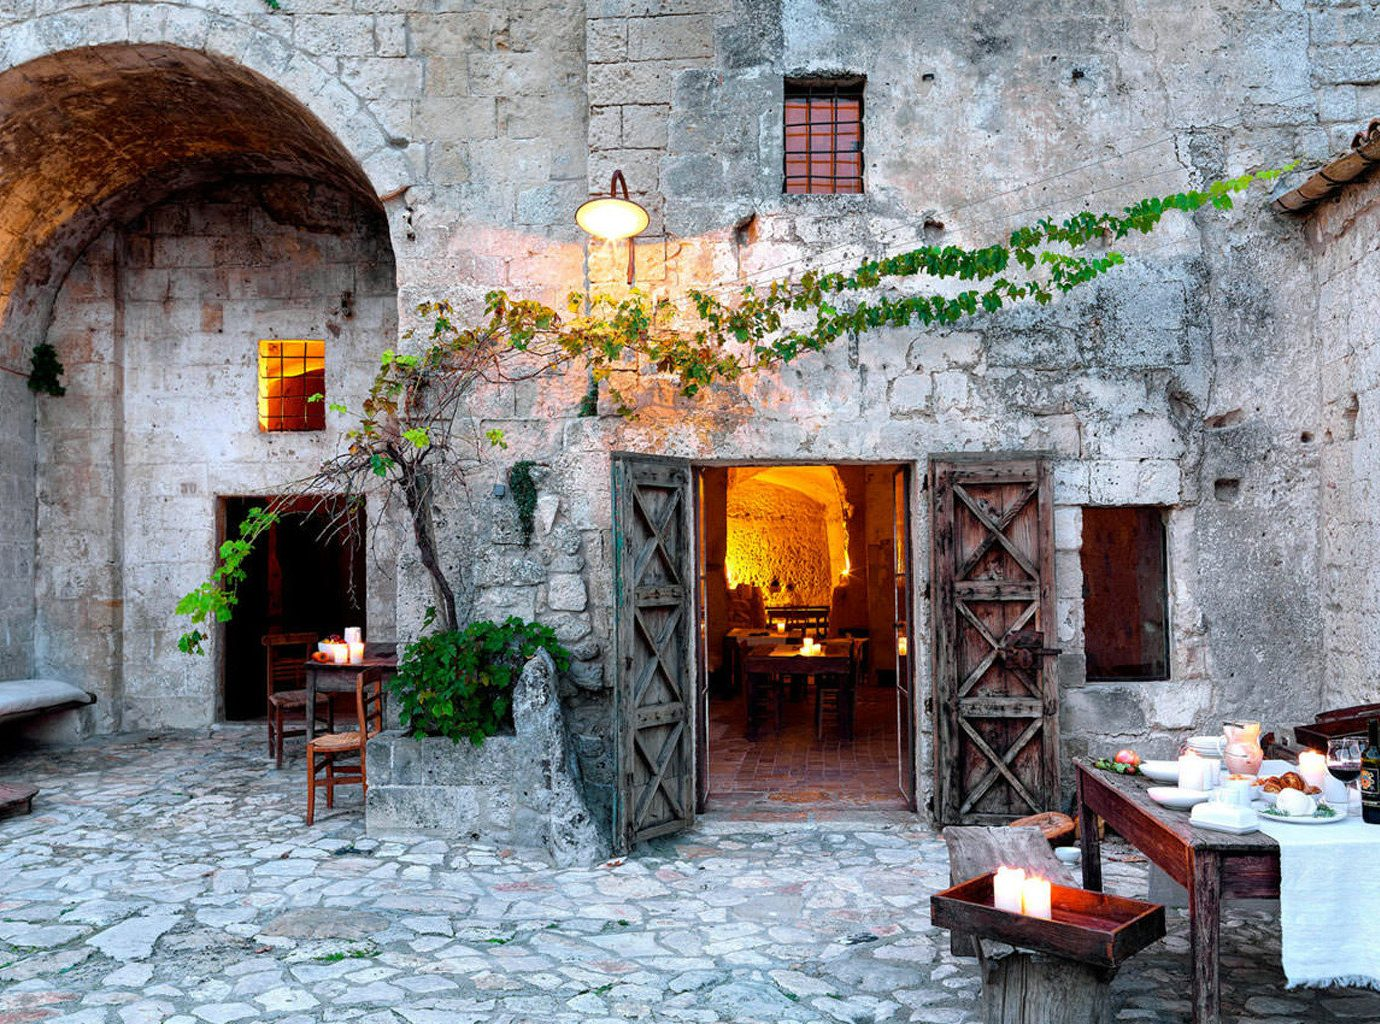 B&B Boutique Country Drink Eat Historic Hotels Romance Romantic Trip Ideas Wine-Tasting building stone chair house Town Fireplace old brick Courtyard cottage home Village furniture hacienda ancient history alley area